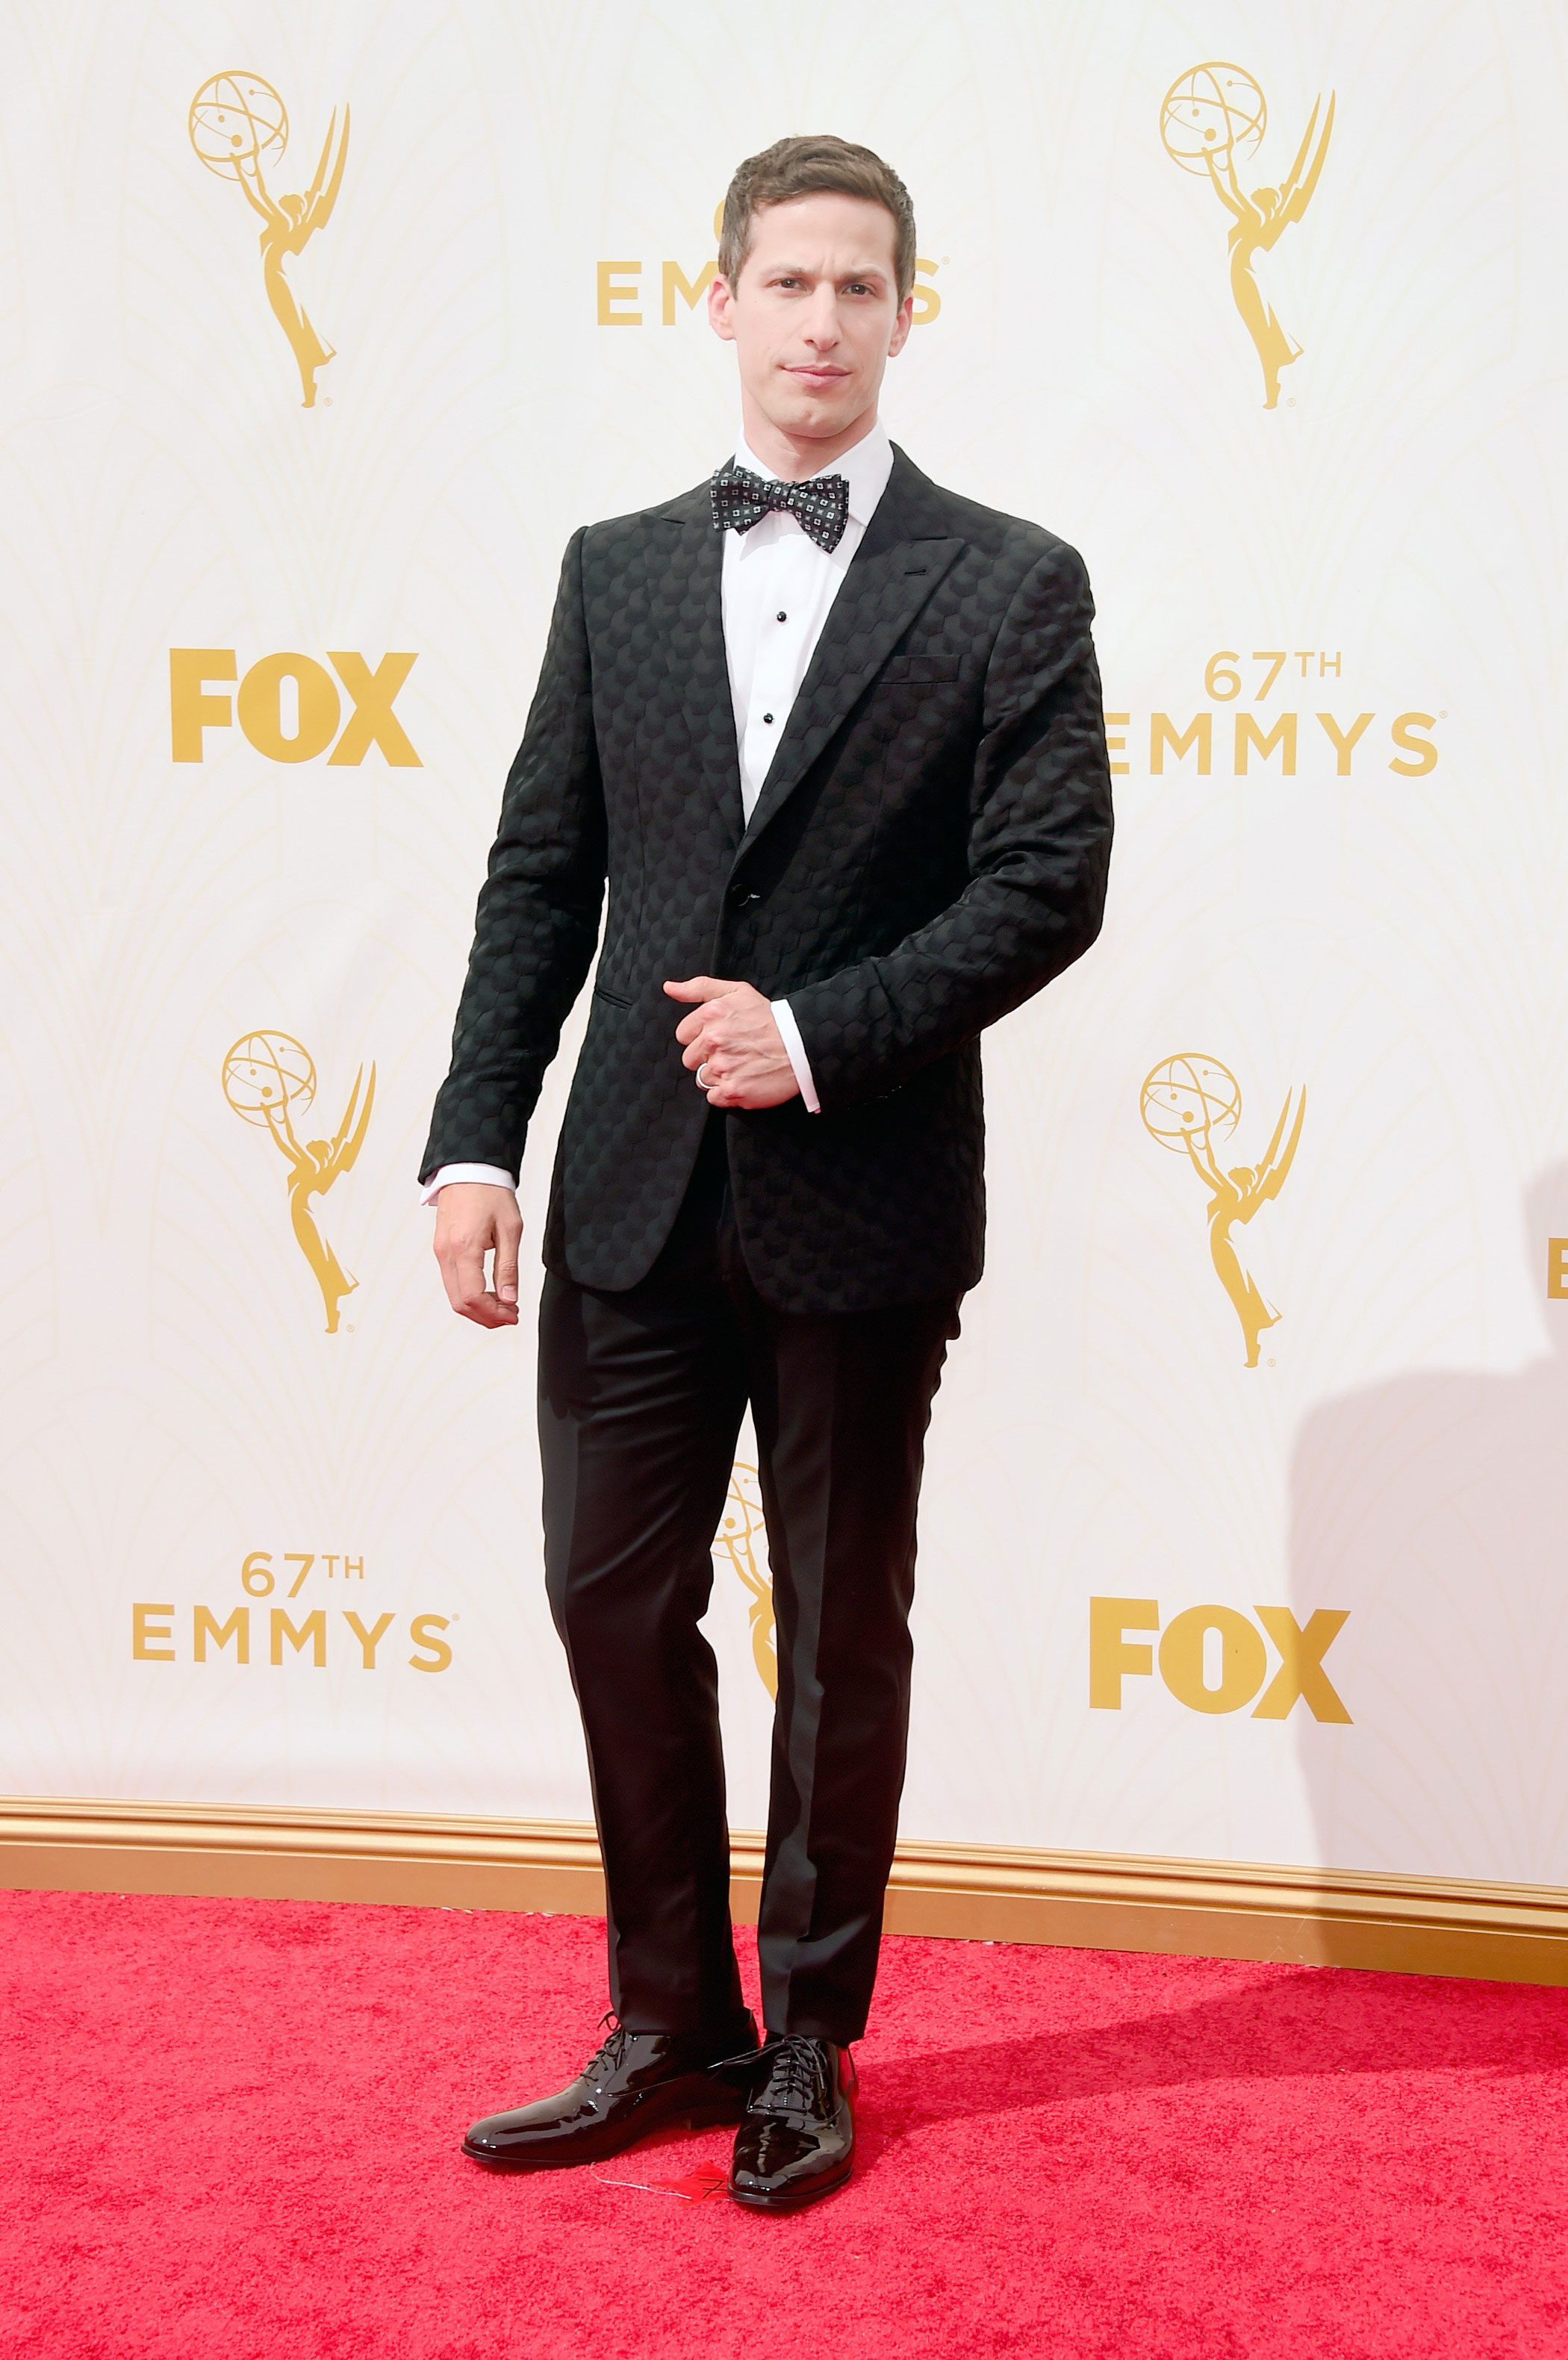 Andy Samberg at the 67th Emmy Award on Sept. 20, 2015 in Los Angeles.